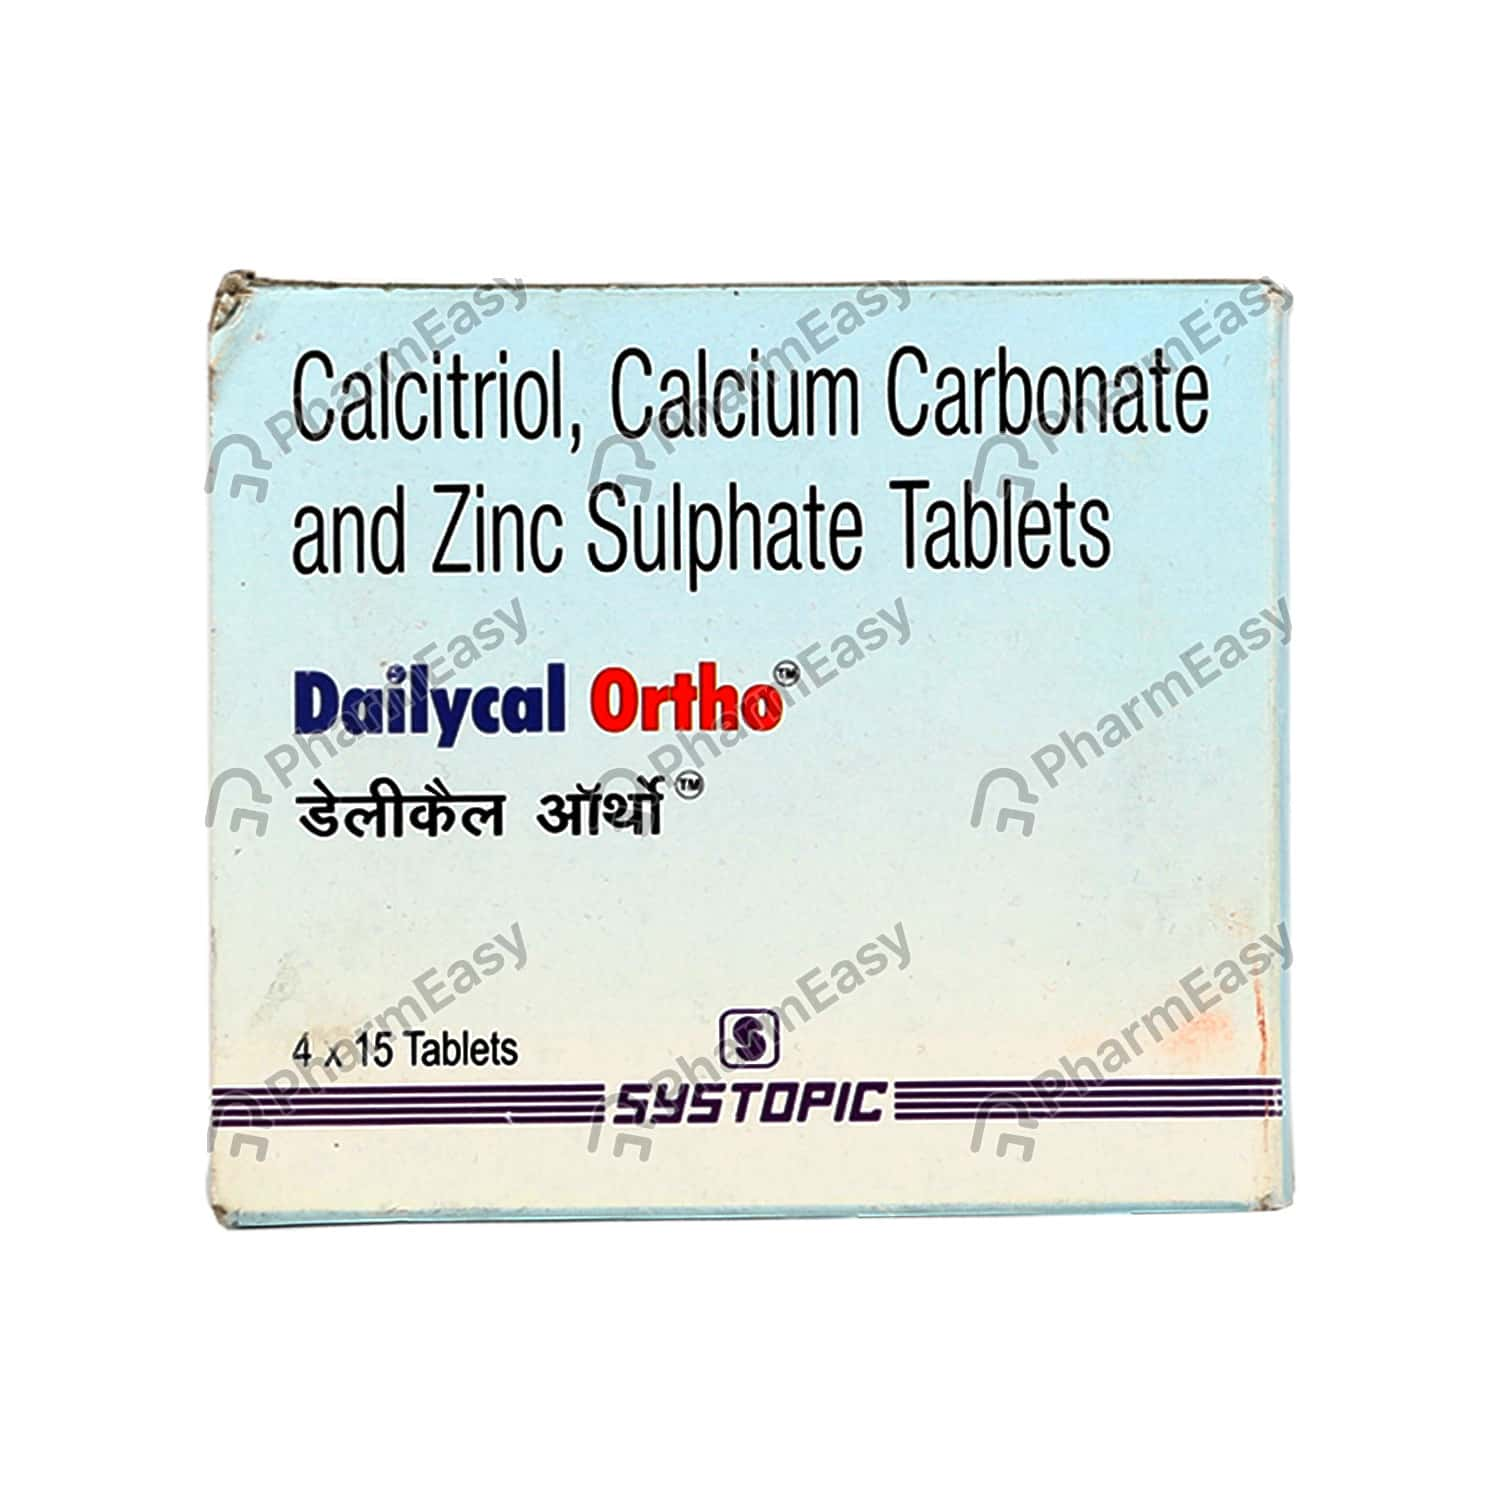 Dailycal Ortho Strip Of 15 Tablets